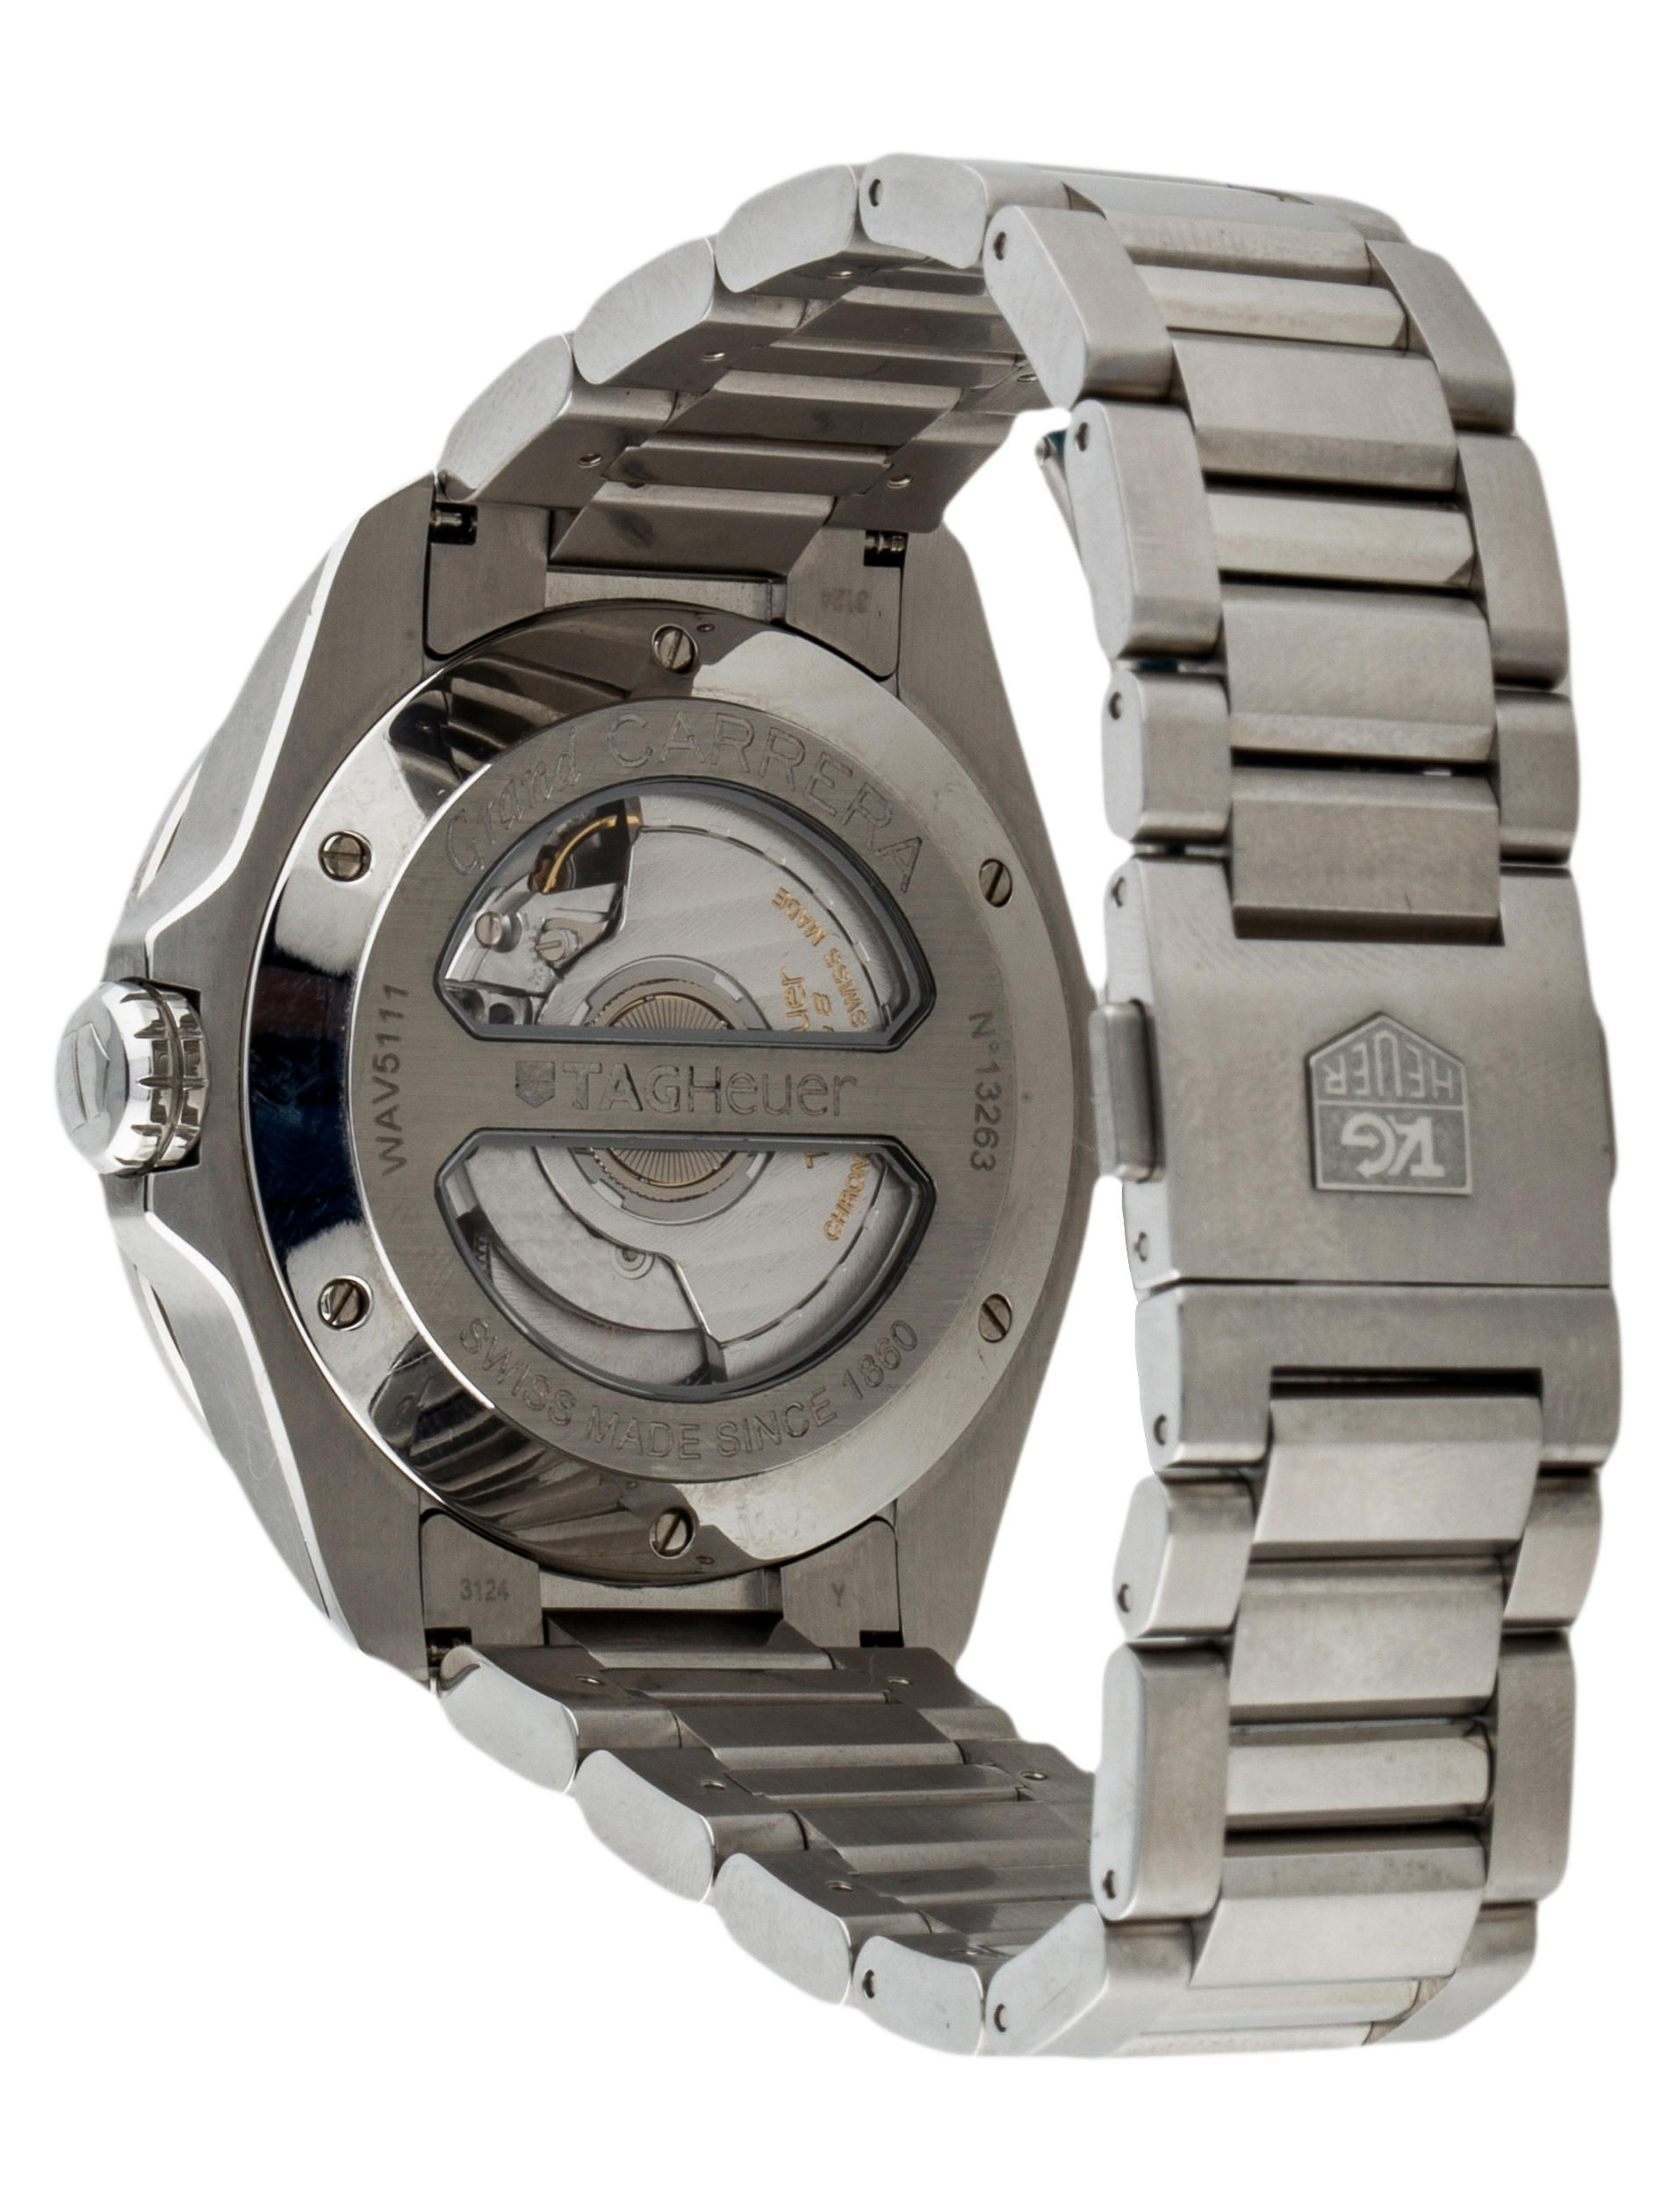 Tag Heuer Grand Carrera Calibre 8 Watch Caliber Stainless Steel Link Bracelet Tag Heuer